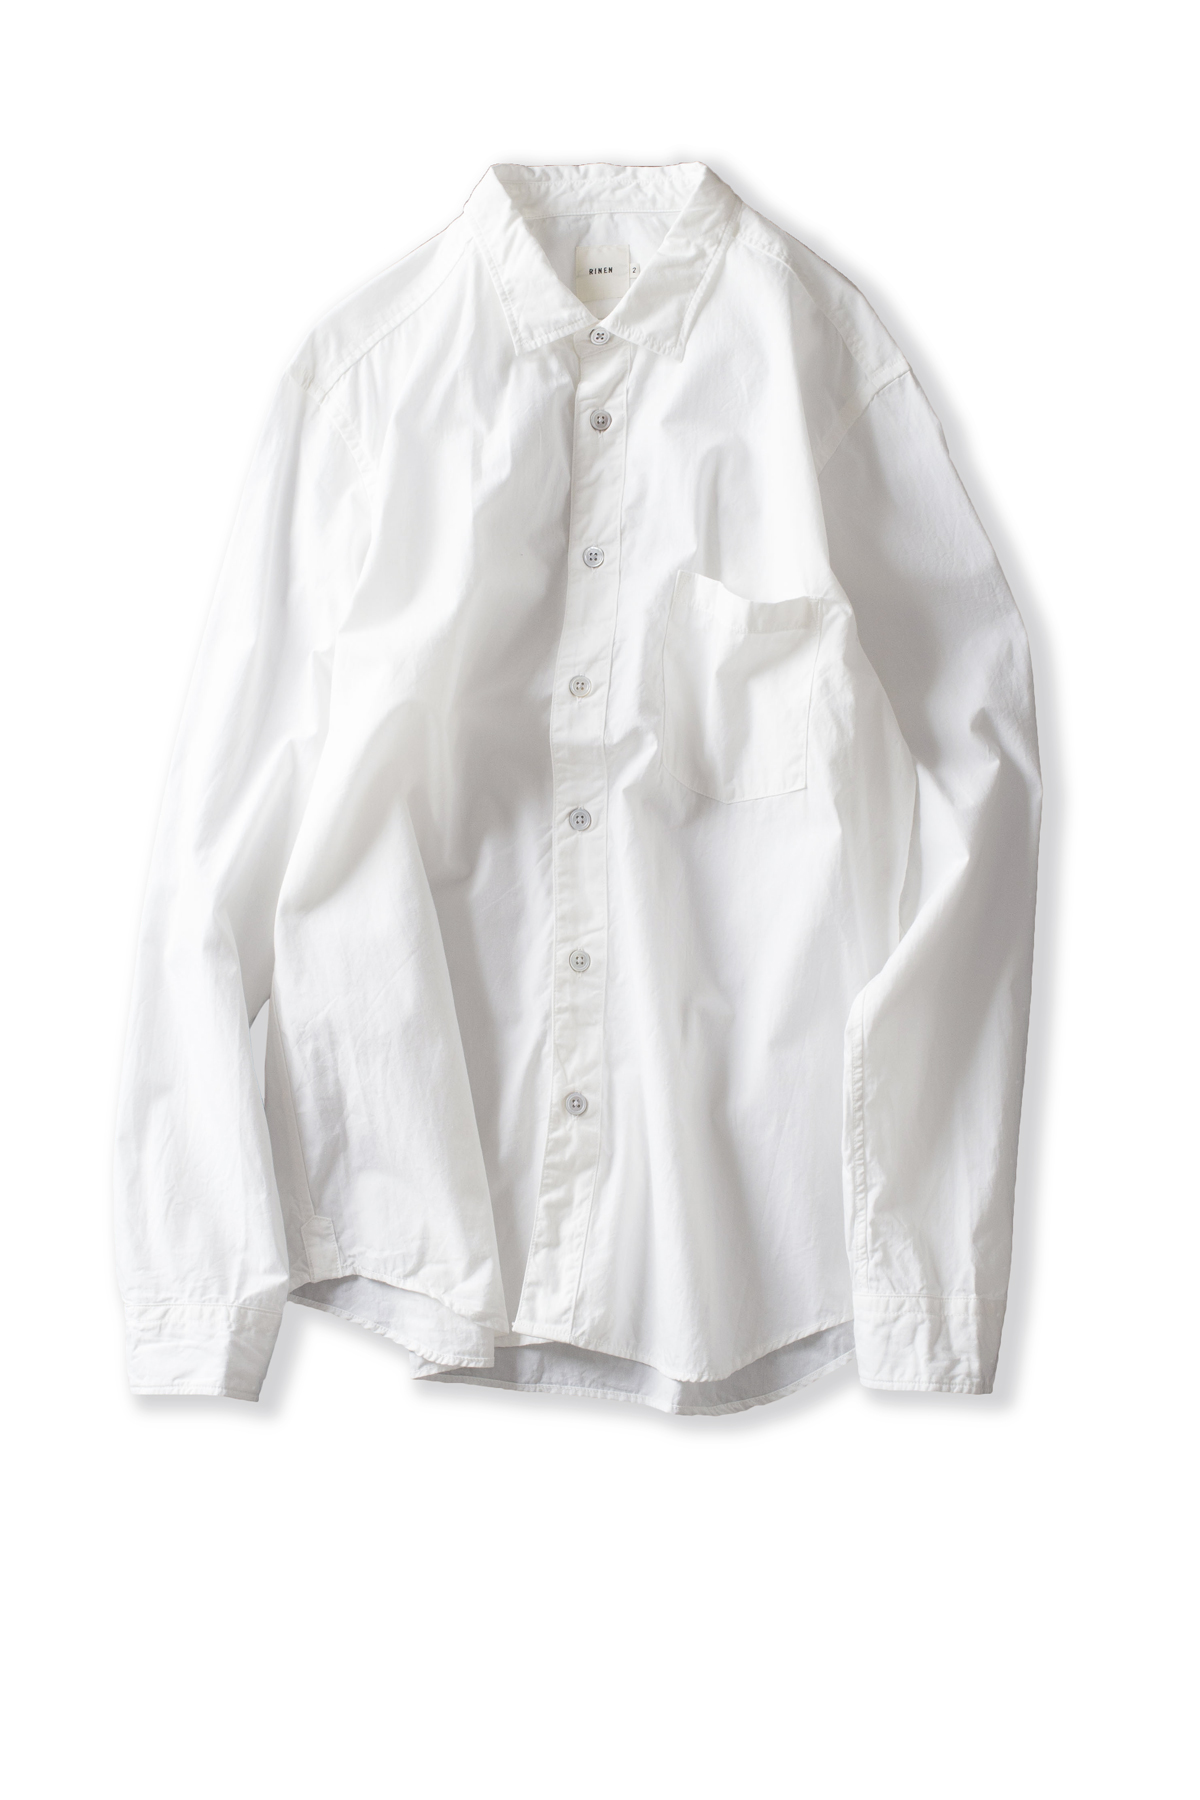 RINEN : Organic Broad Regular Collar Shirt (White)